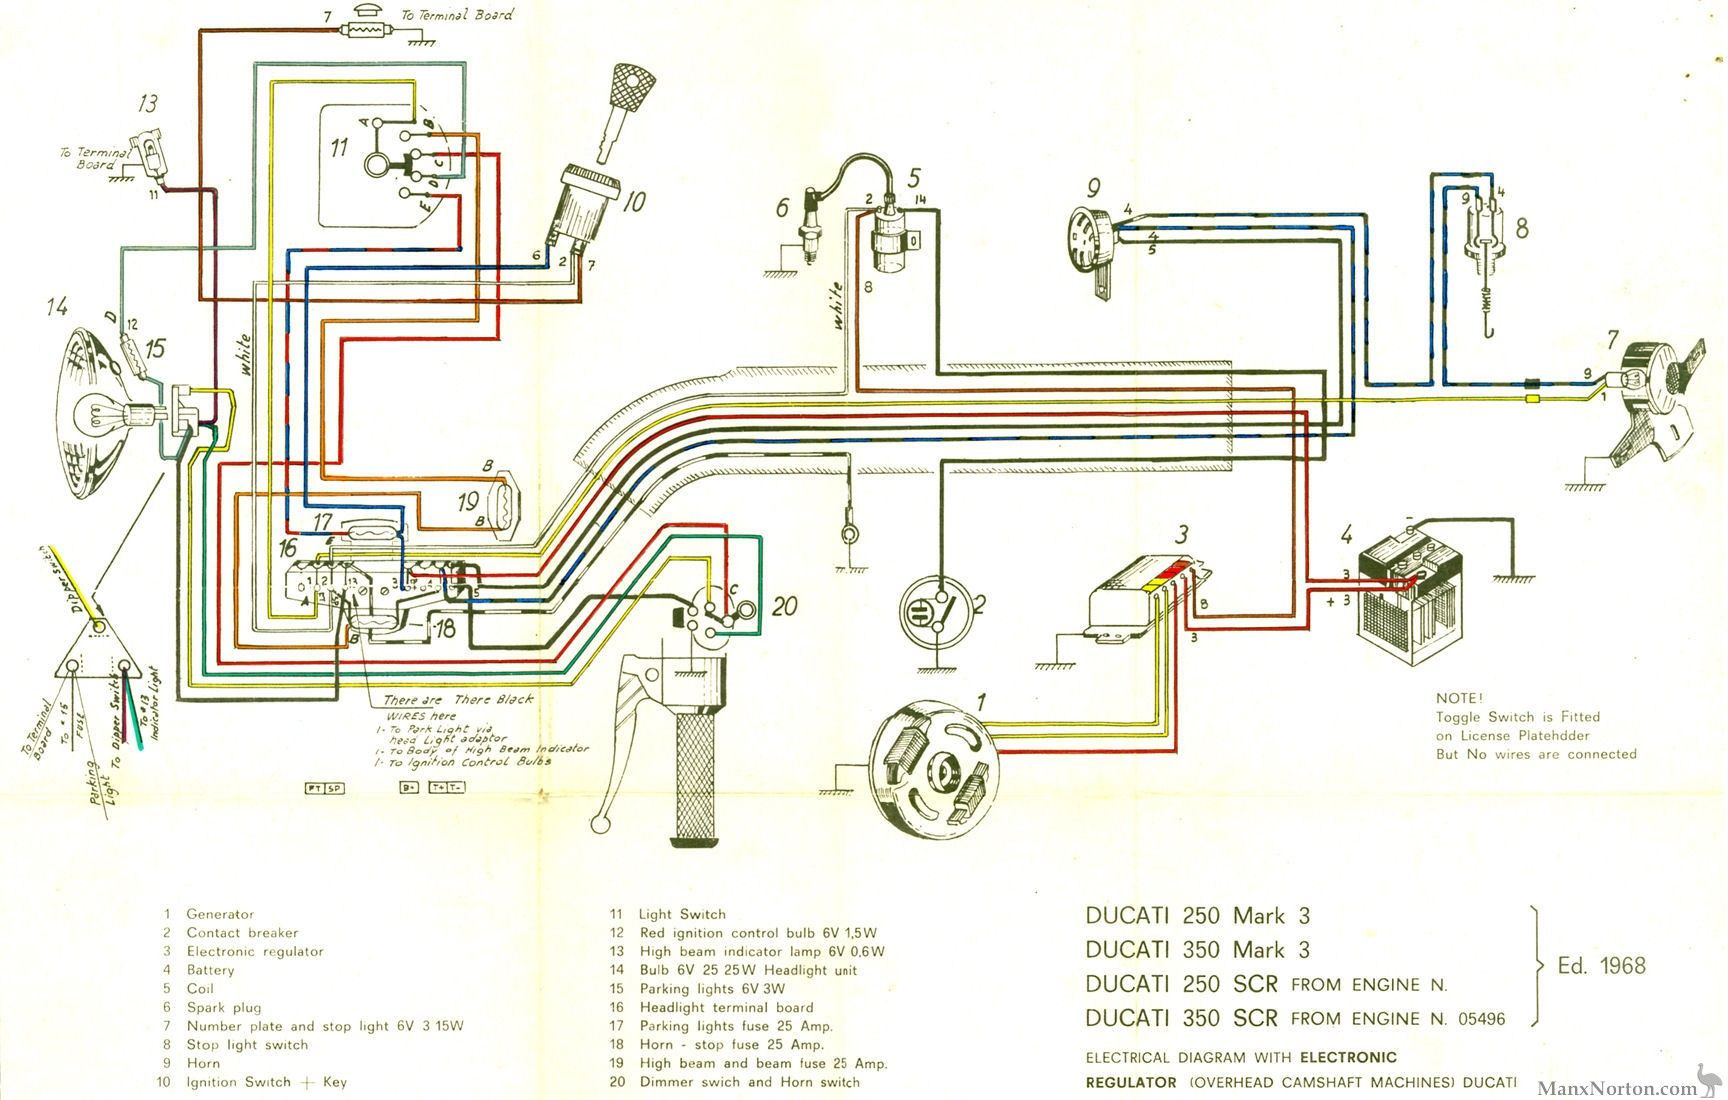 2002 Yamaha R6 Stator Wiring Diagram Electrical Schematics Horn Switch 2005 Ducati 696 U2022 1983 It